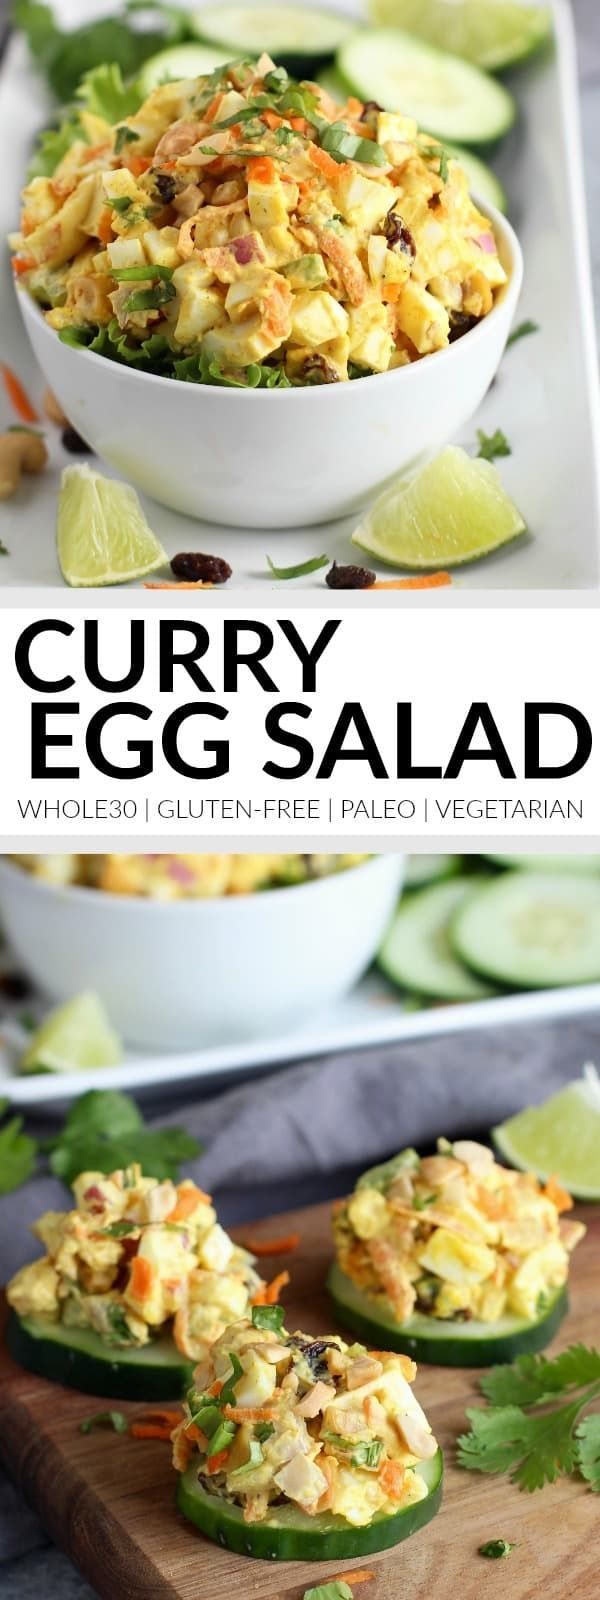 Curry Egg Salad | healthy egg salad recipe | whole30 lunch recipes | gluten-free lunch recipes | paleo lunch recipes | vegetarian lunch recipes || The Real Food Dietitians #whole30 #healthyeggsalad #eggsaladrecipe